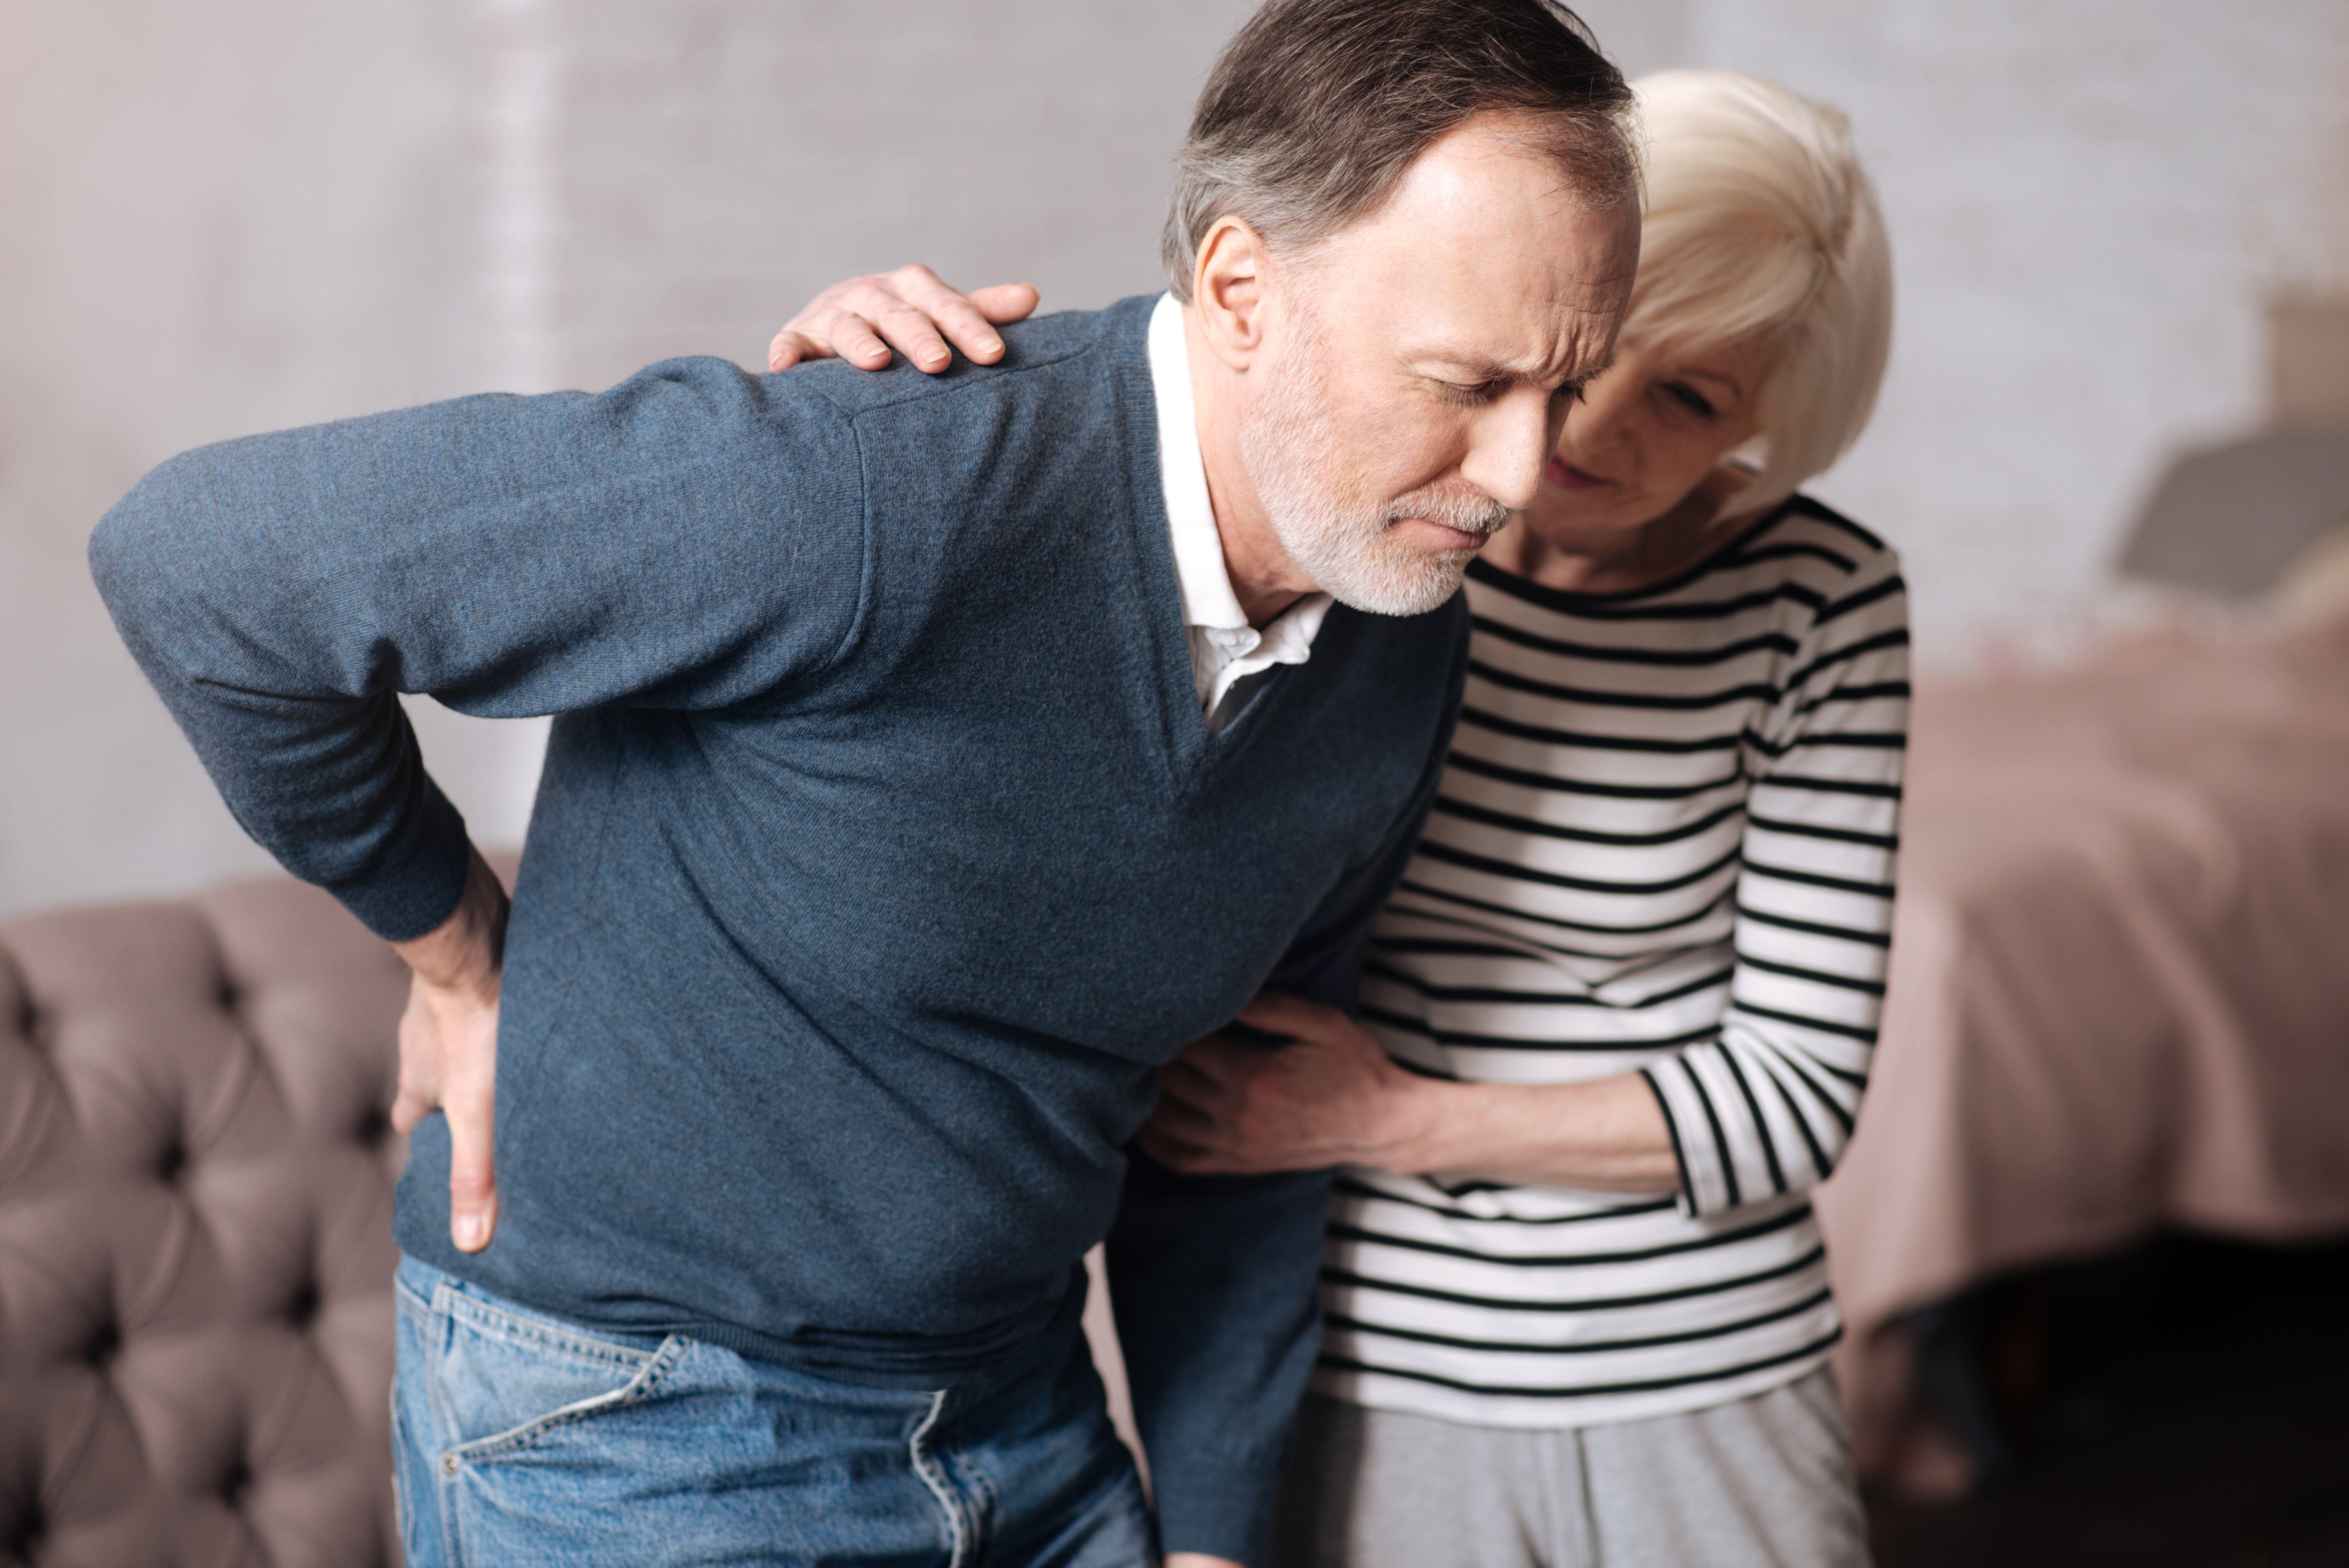 Woman-Helping-Man-with-Back-Pain